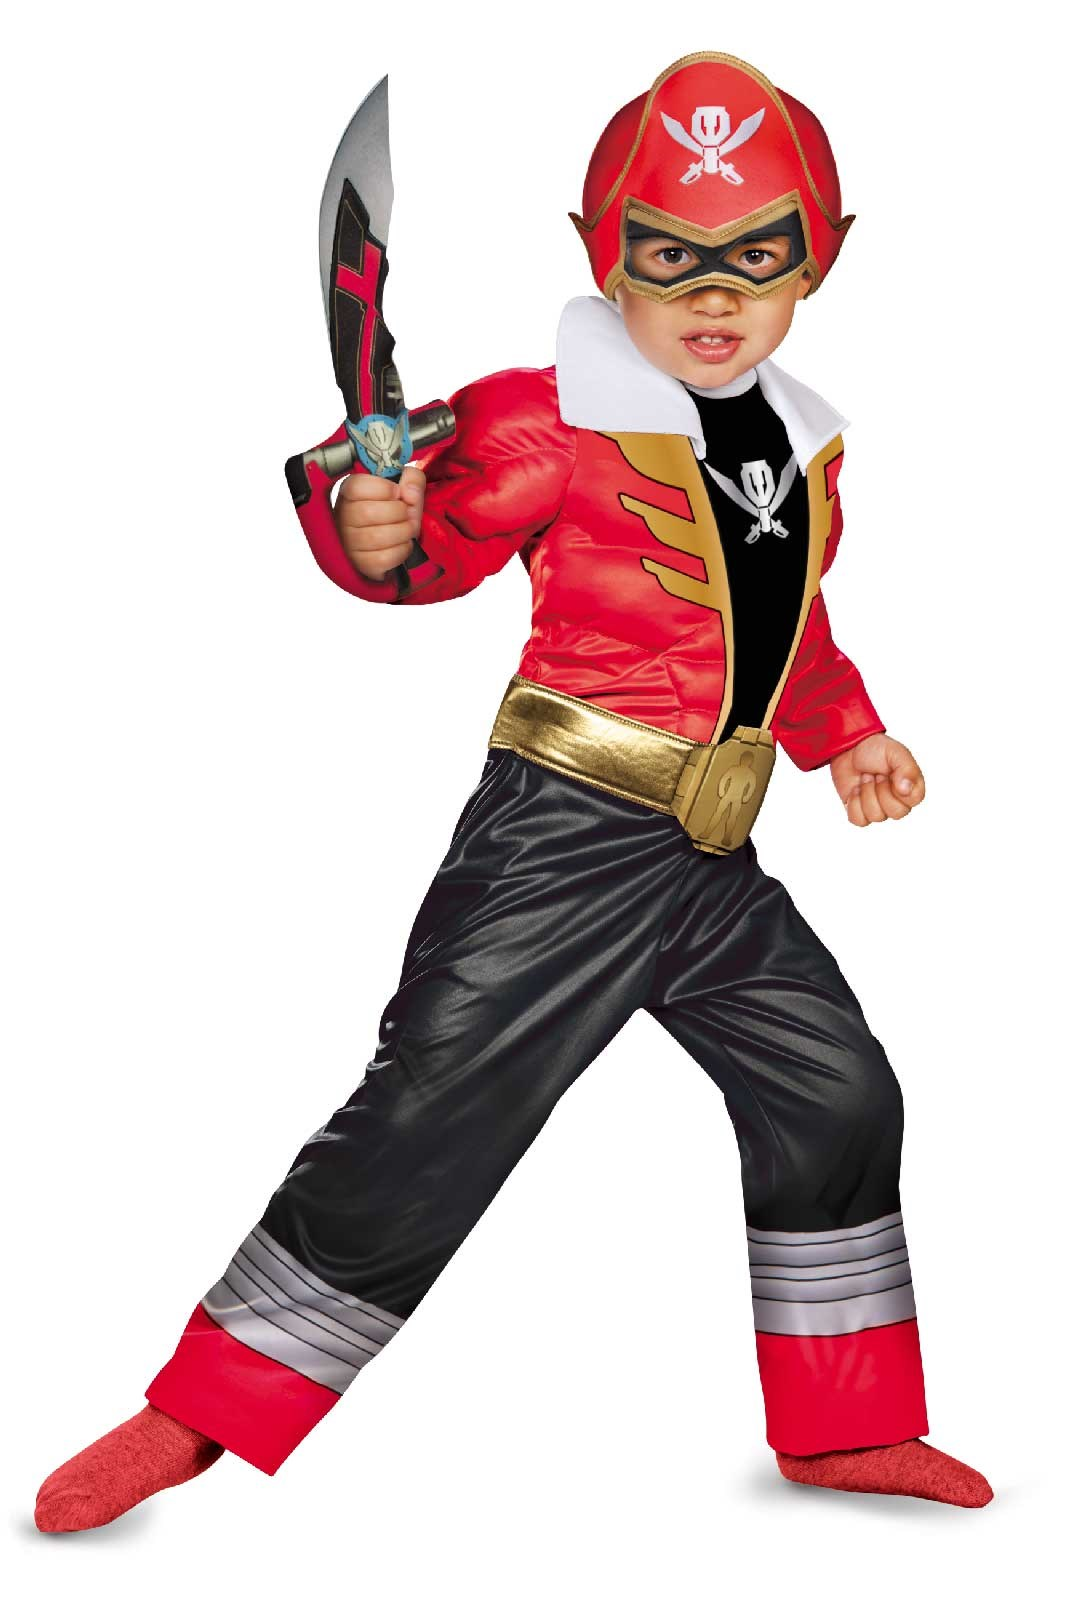 Power Ranger Super Megaforce - Red Ranger Toddler / Child Muscle Costume 4-6